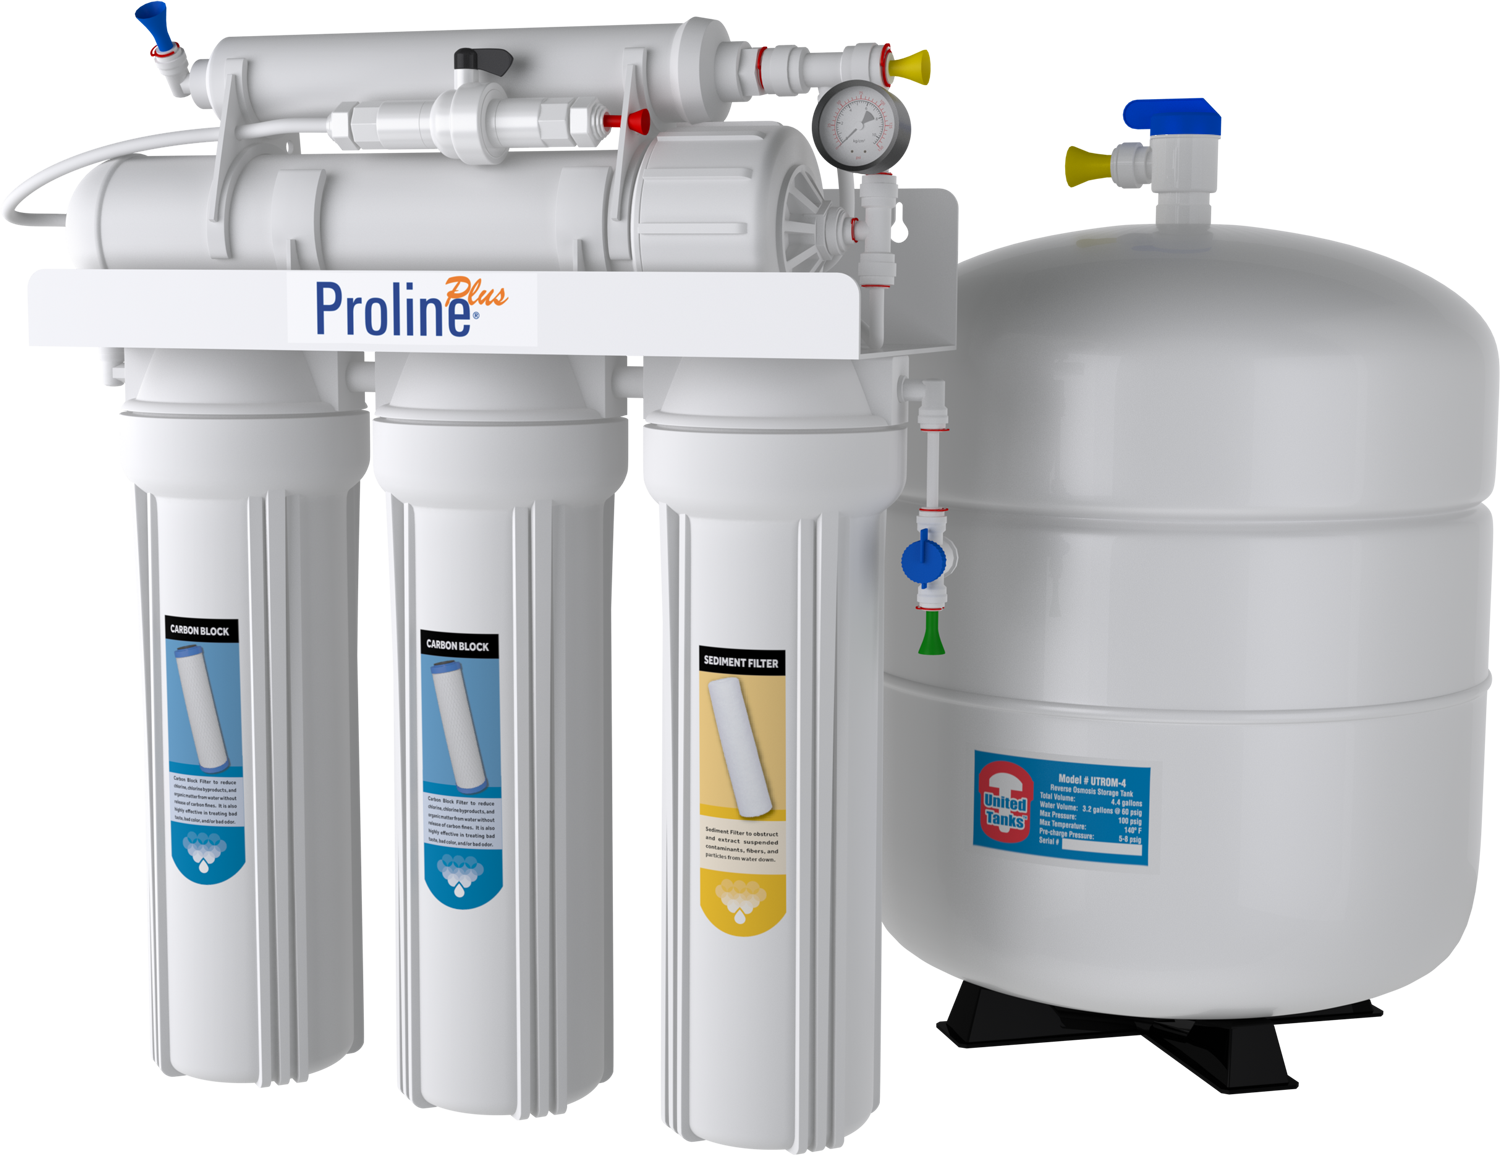 proline plus ro reverse osmosis filtration system. Black Bedroom Furniture Sets. Home Design Ideas